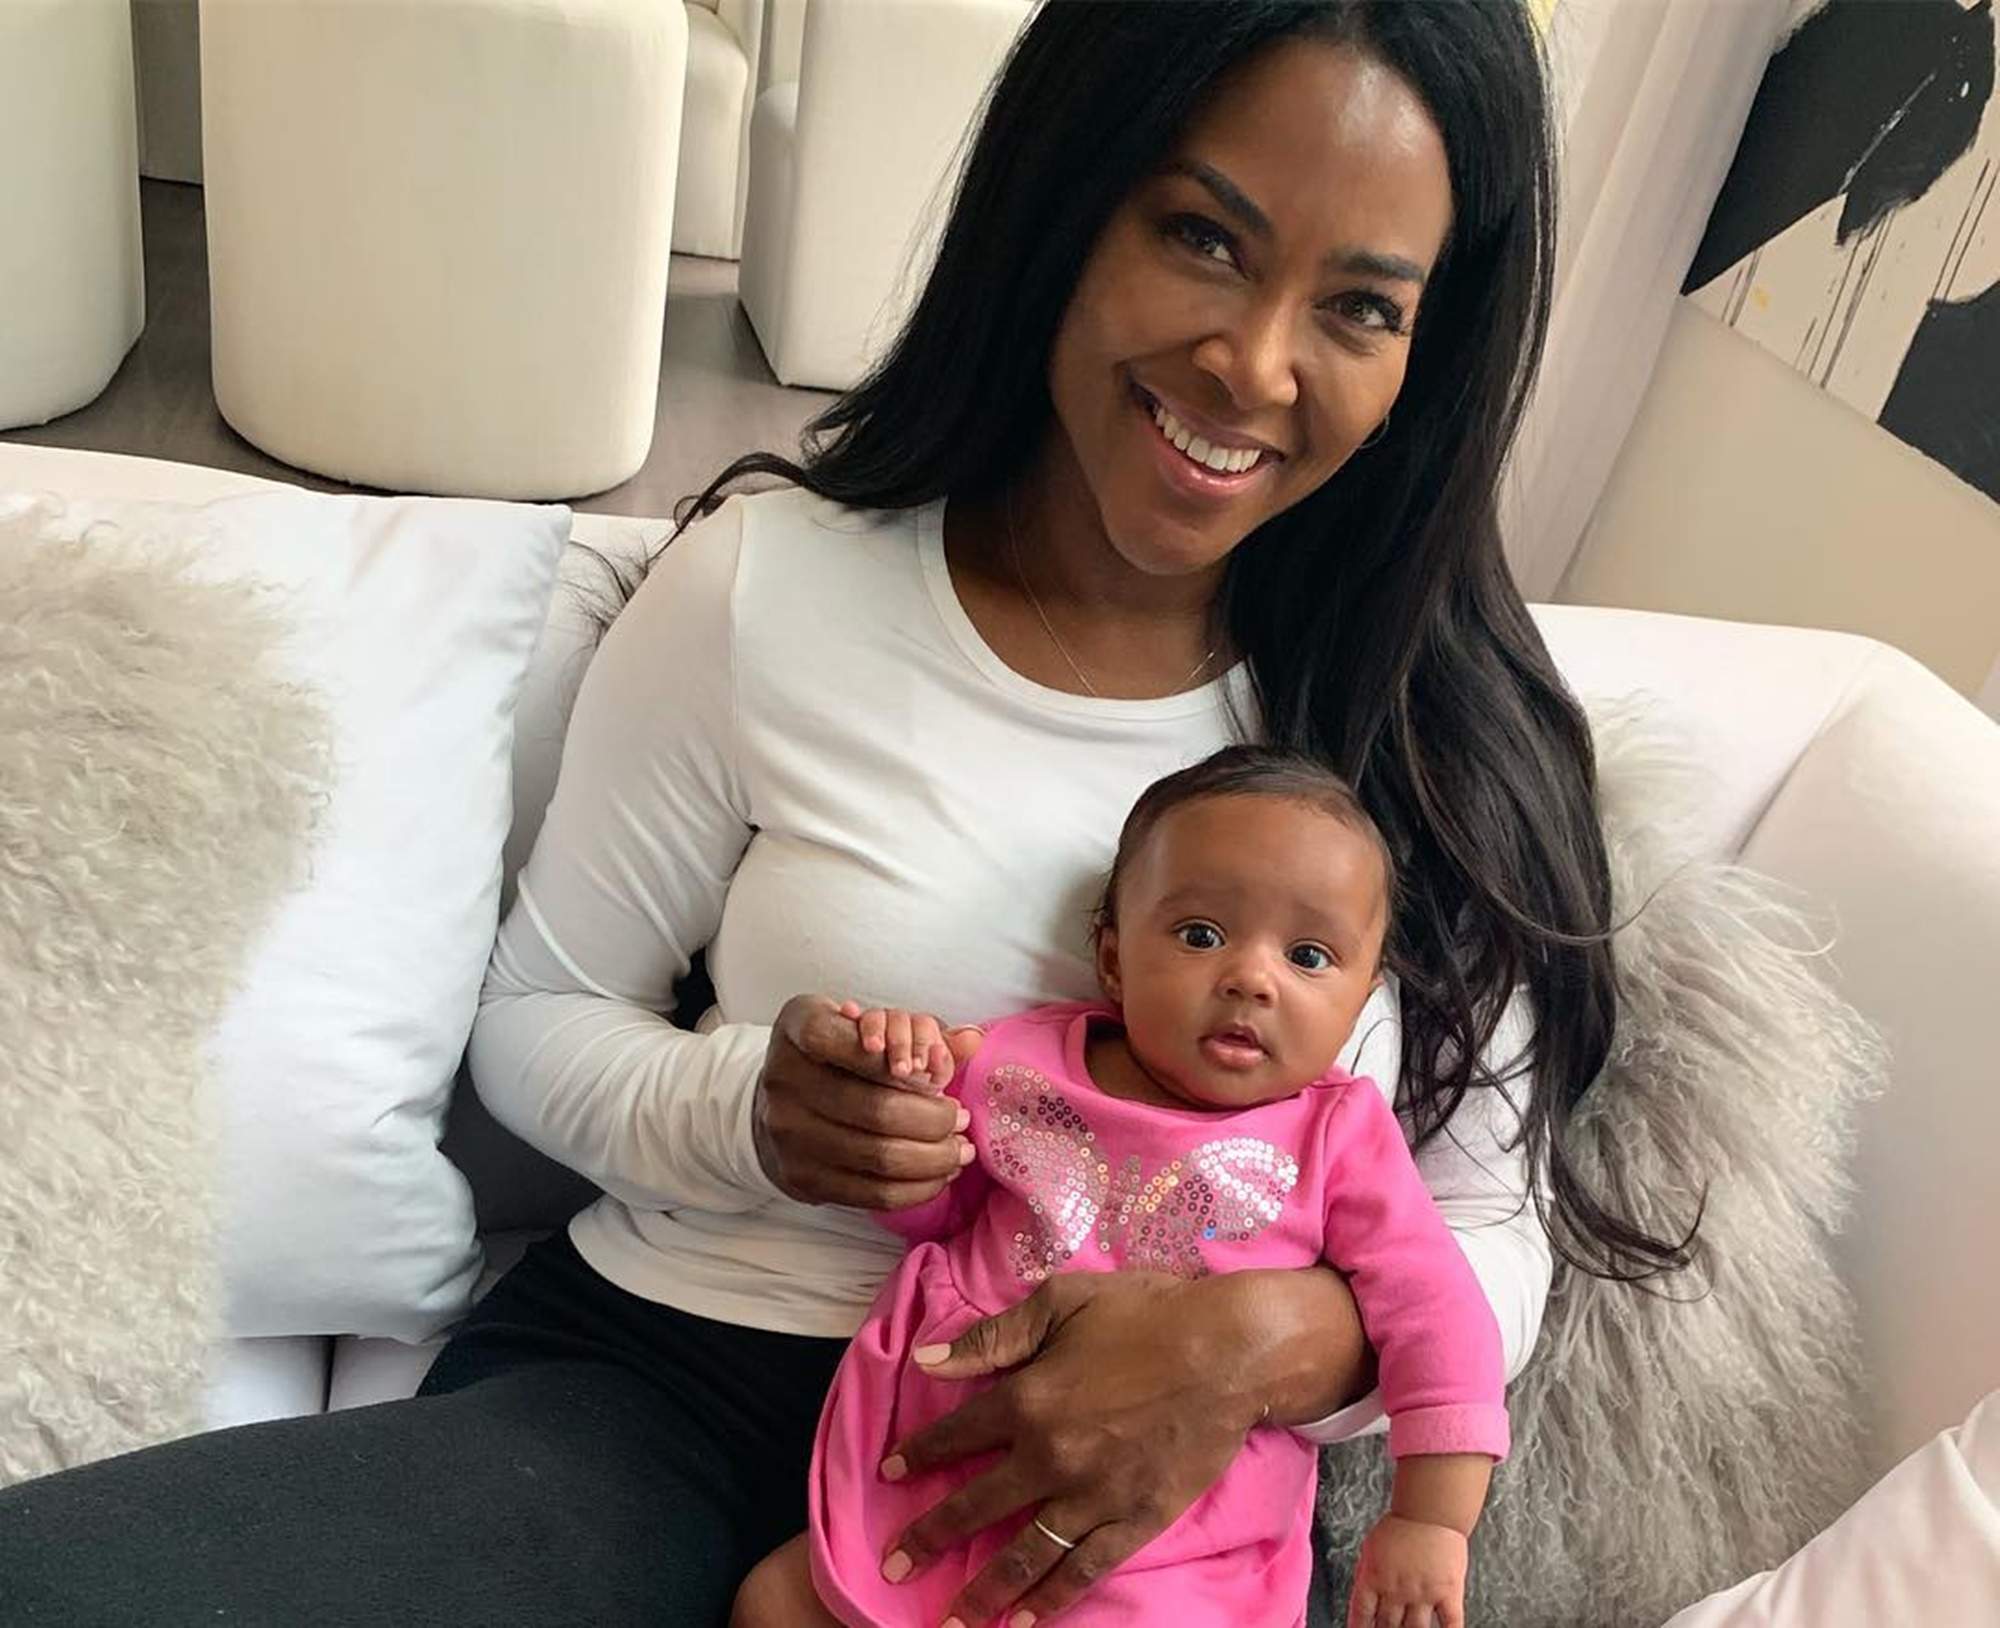 kenya-moore-kills-it-in-little-black-dress-photo-curious-fans-have-questions-about-her-vanishing-waistline